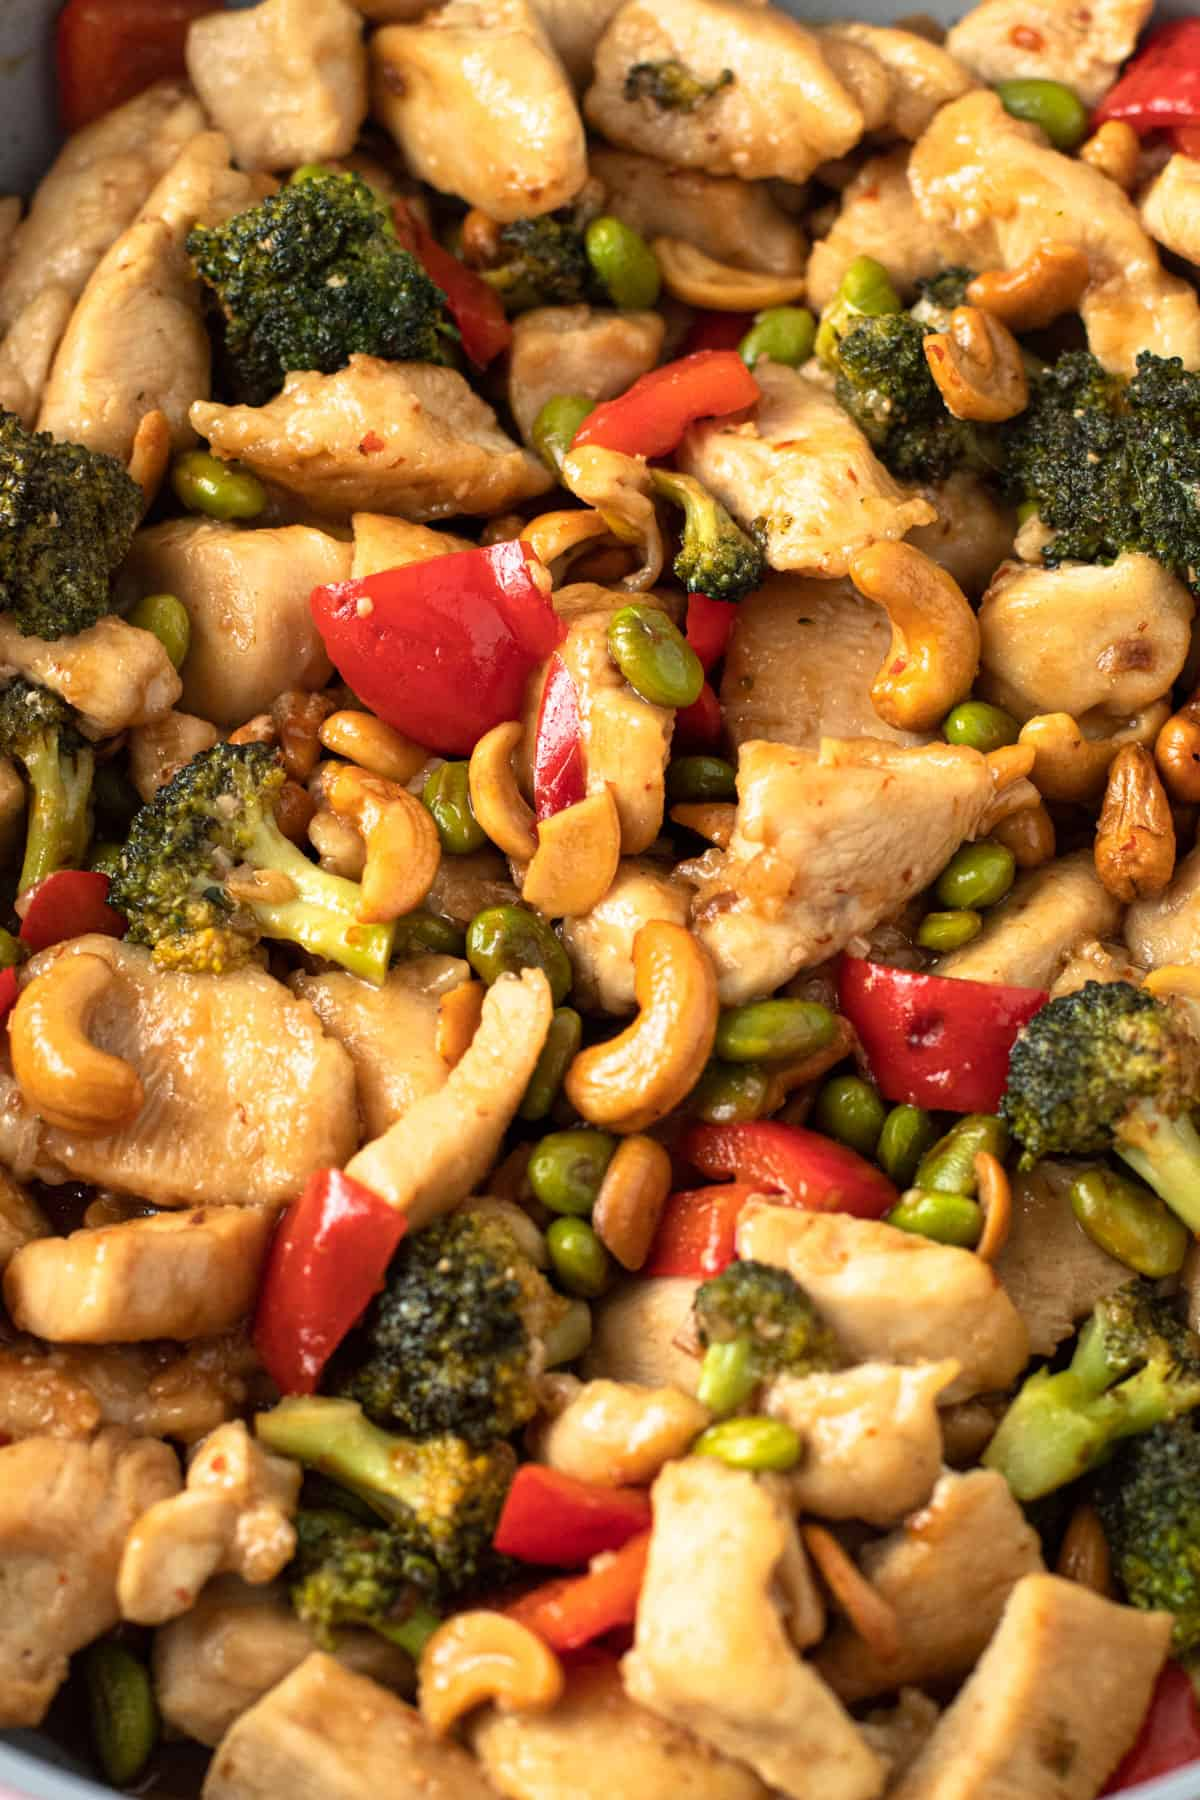 Paleo cashew chicken with broccoli and red pepper.